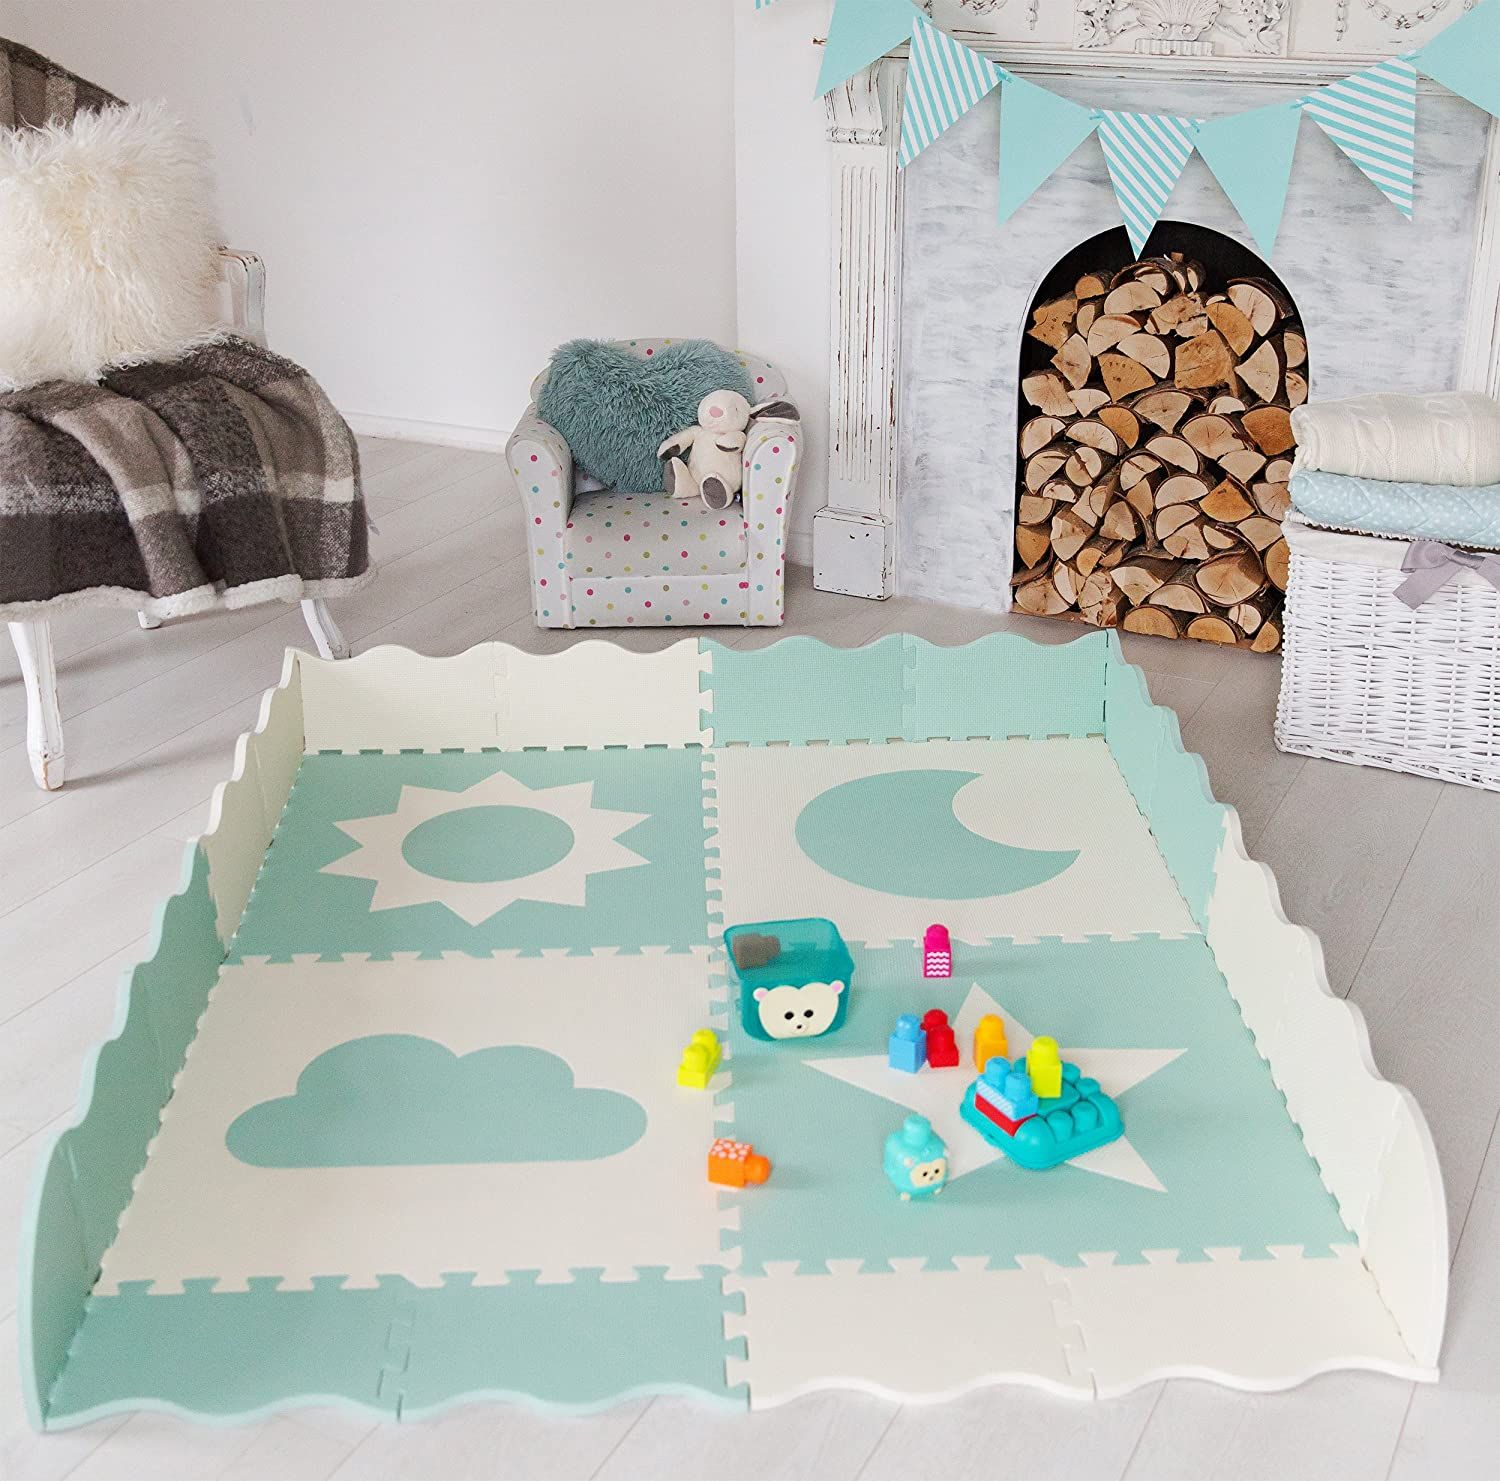 Baby Play Mat Tiles 61 x 61 Extra Large Teal /& White Interlocking Playroom /& Nursery Playmat Safe /& Protective for Infants /& Toddlers Non Toxic Foam Baby Floor Mat